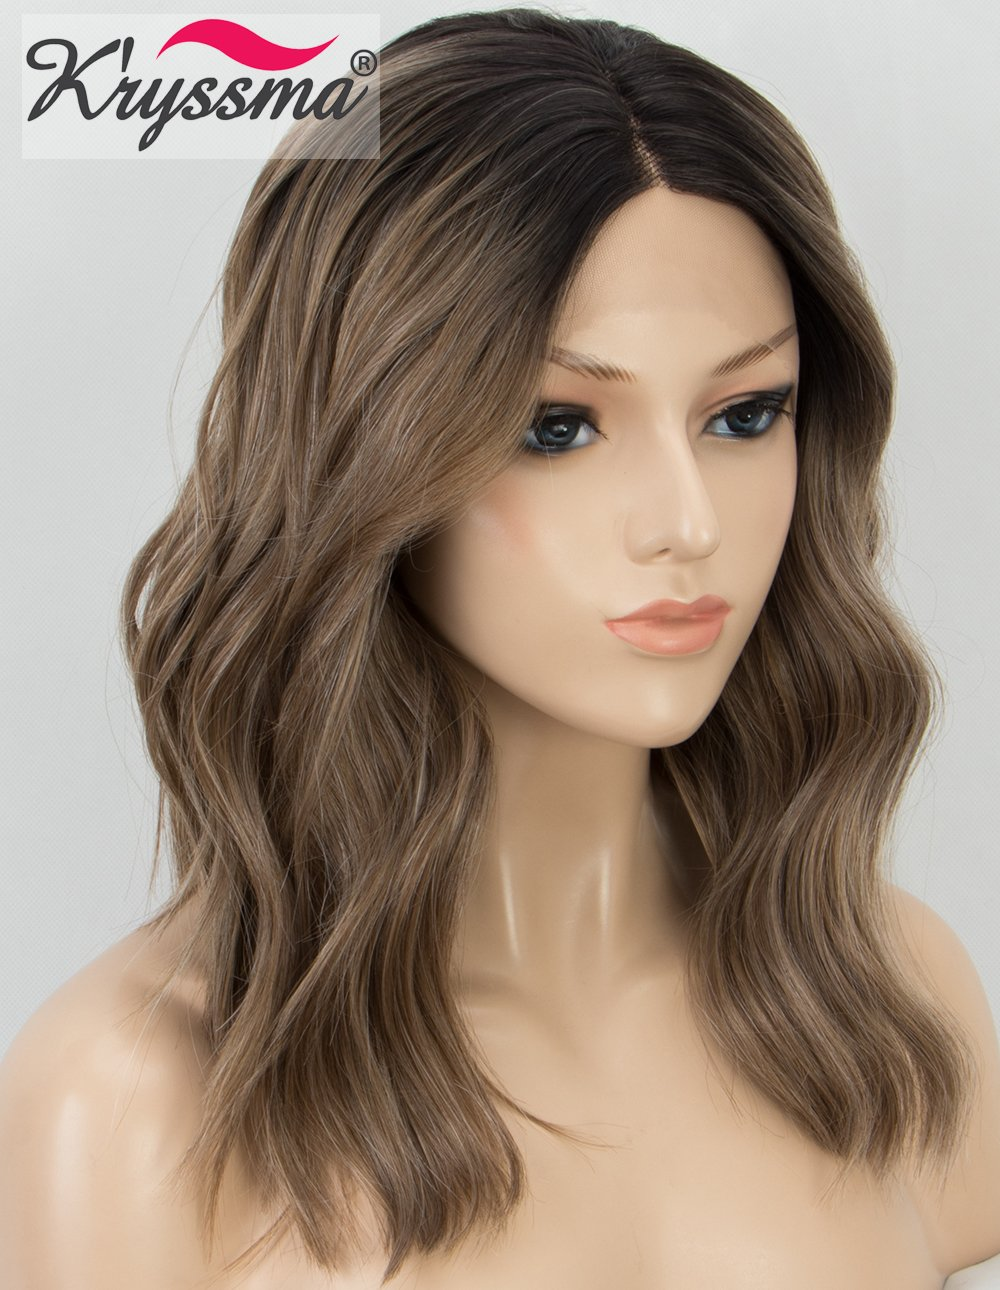 K'ryssma Short Bob Lace Front Wigs Wavy Brown Ombre Synthetic Wig with Dark Roots Middle Parting Half Hand Tied Heat Resistant K' ryssma